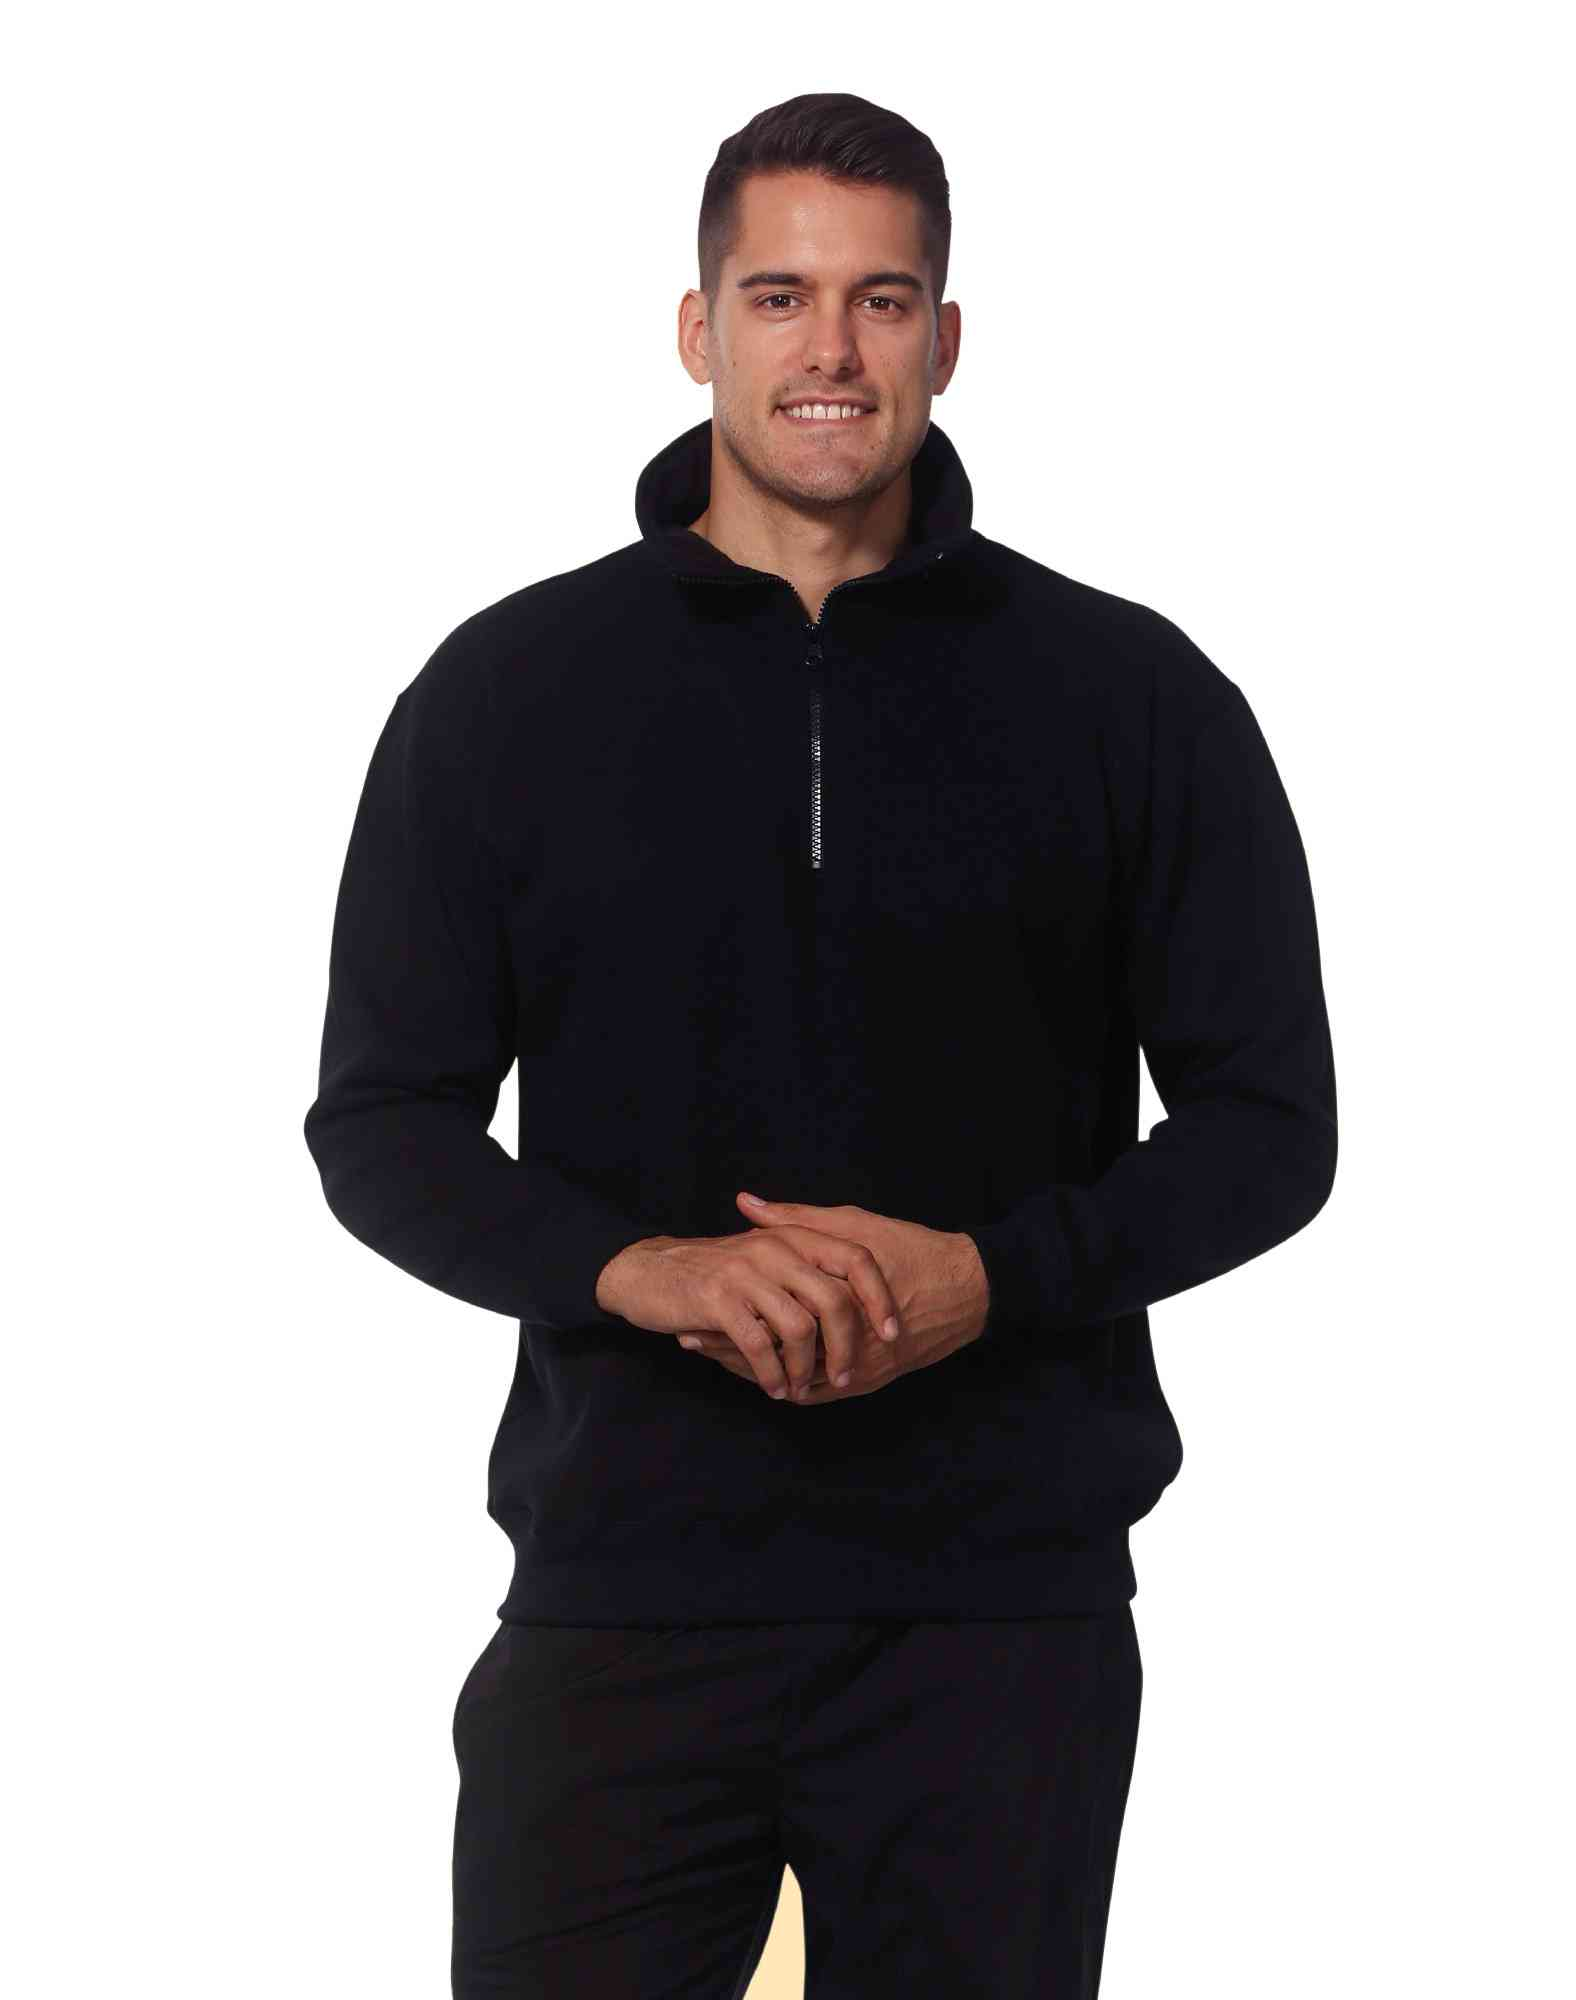 Fl02 Falcon Fleece Sweat Top Mens03 08 2015 08 41 52 - Fl02 Falcon Fleece Sweat Top Mens